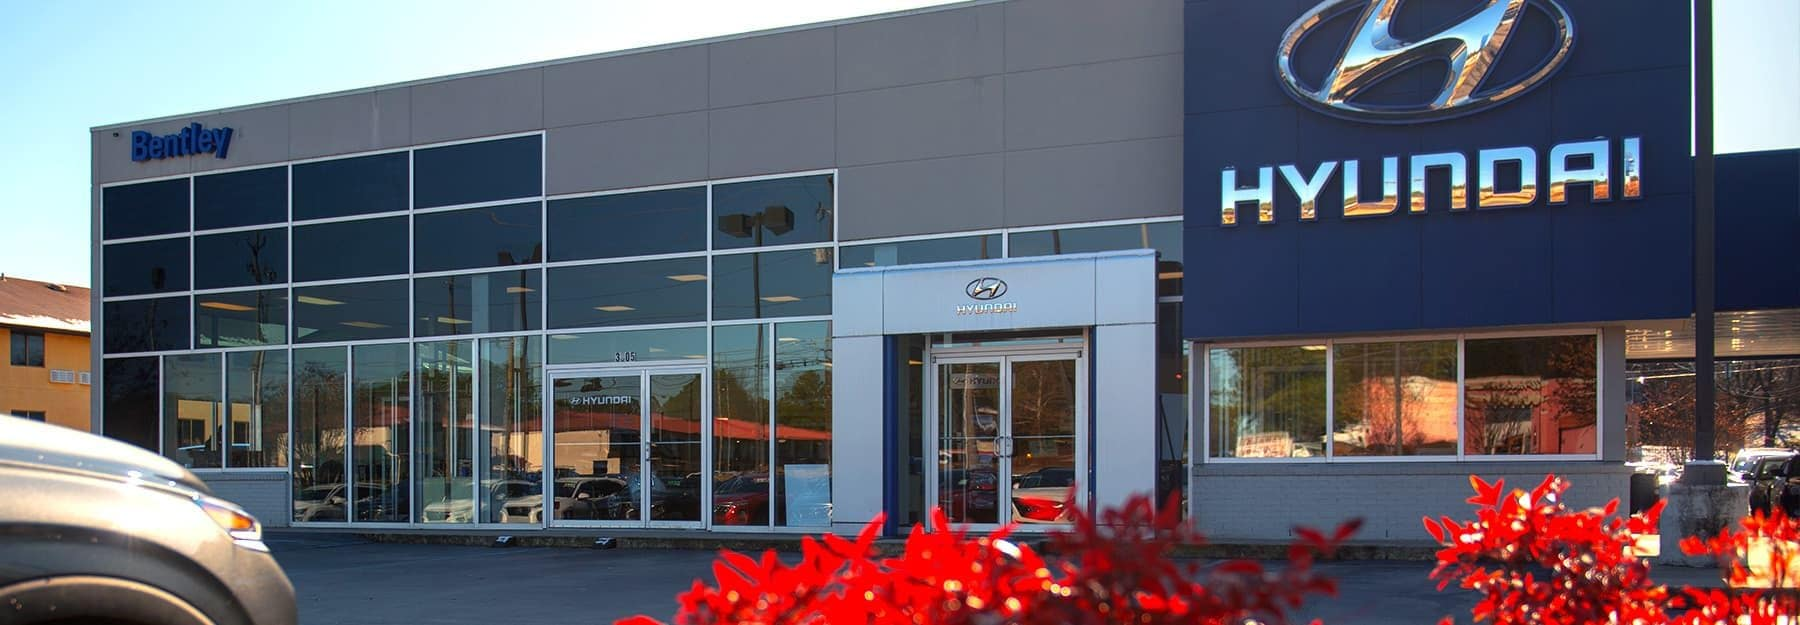 Bentley Hyundai Dealership Exterior